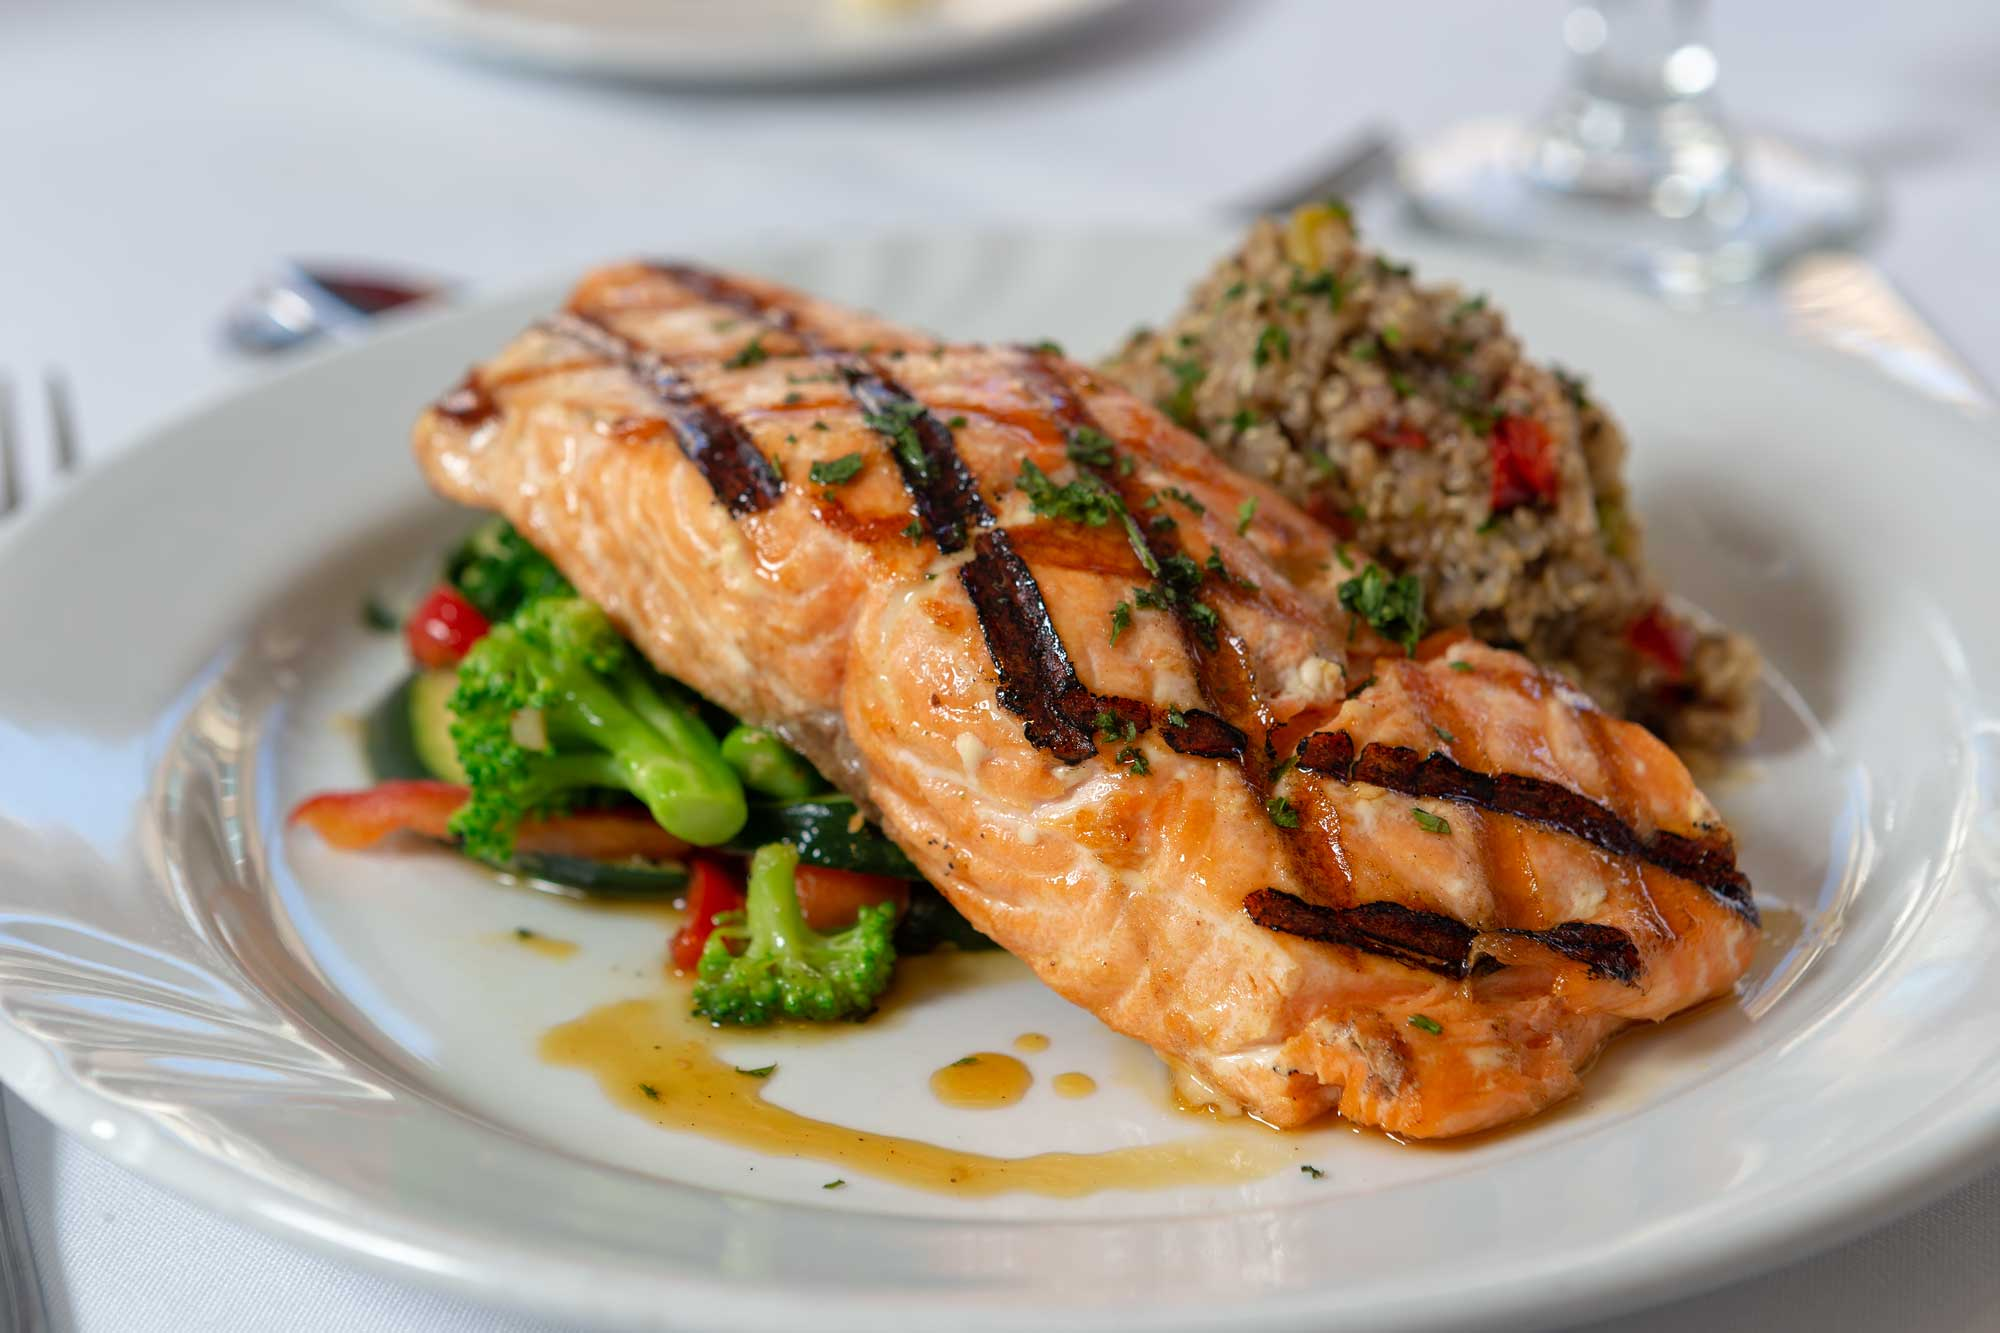 Fresh grilled salmon from Catering By Norris